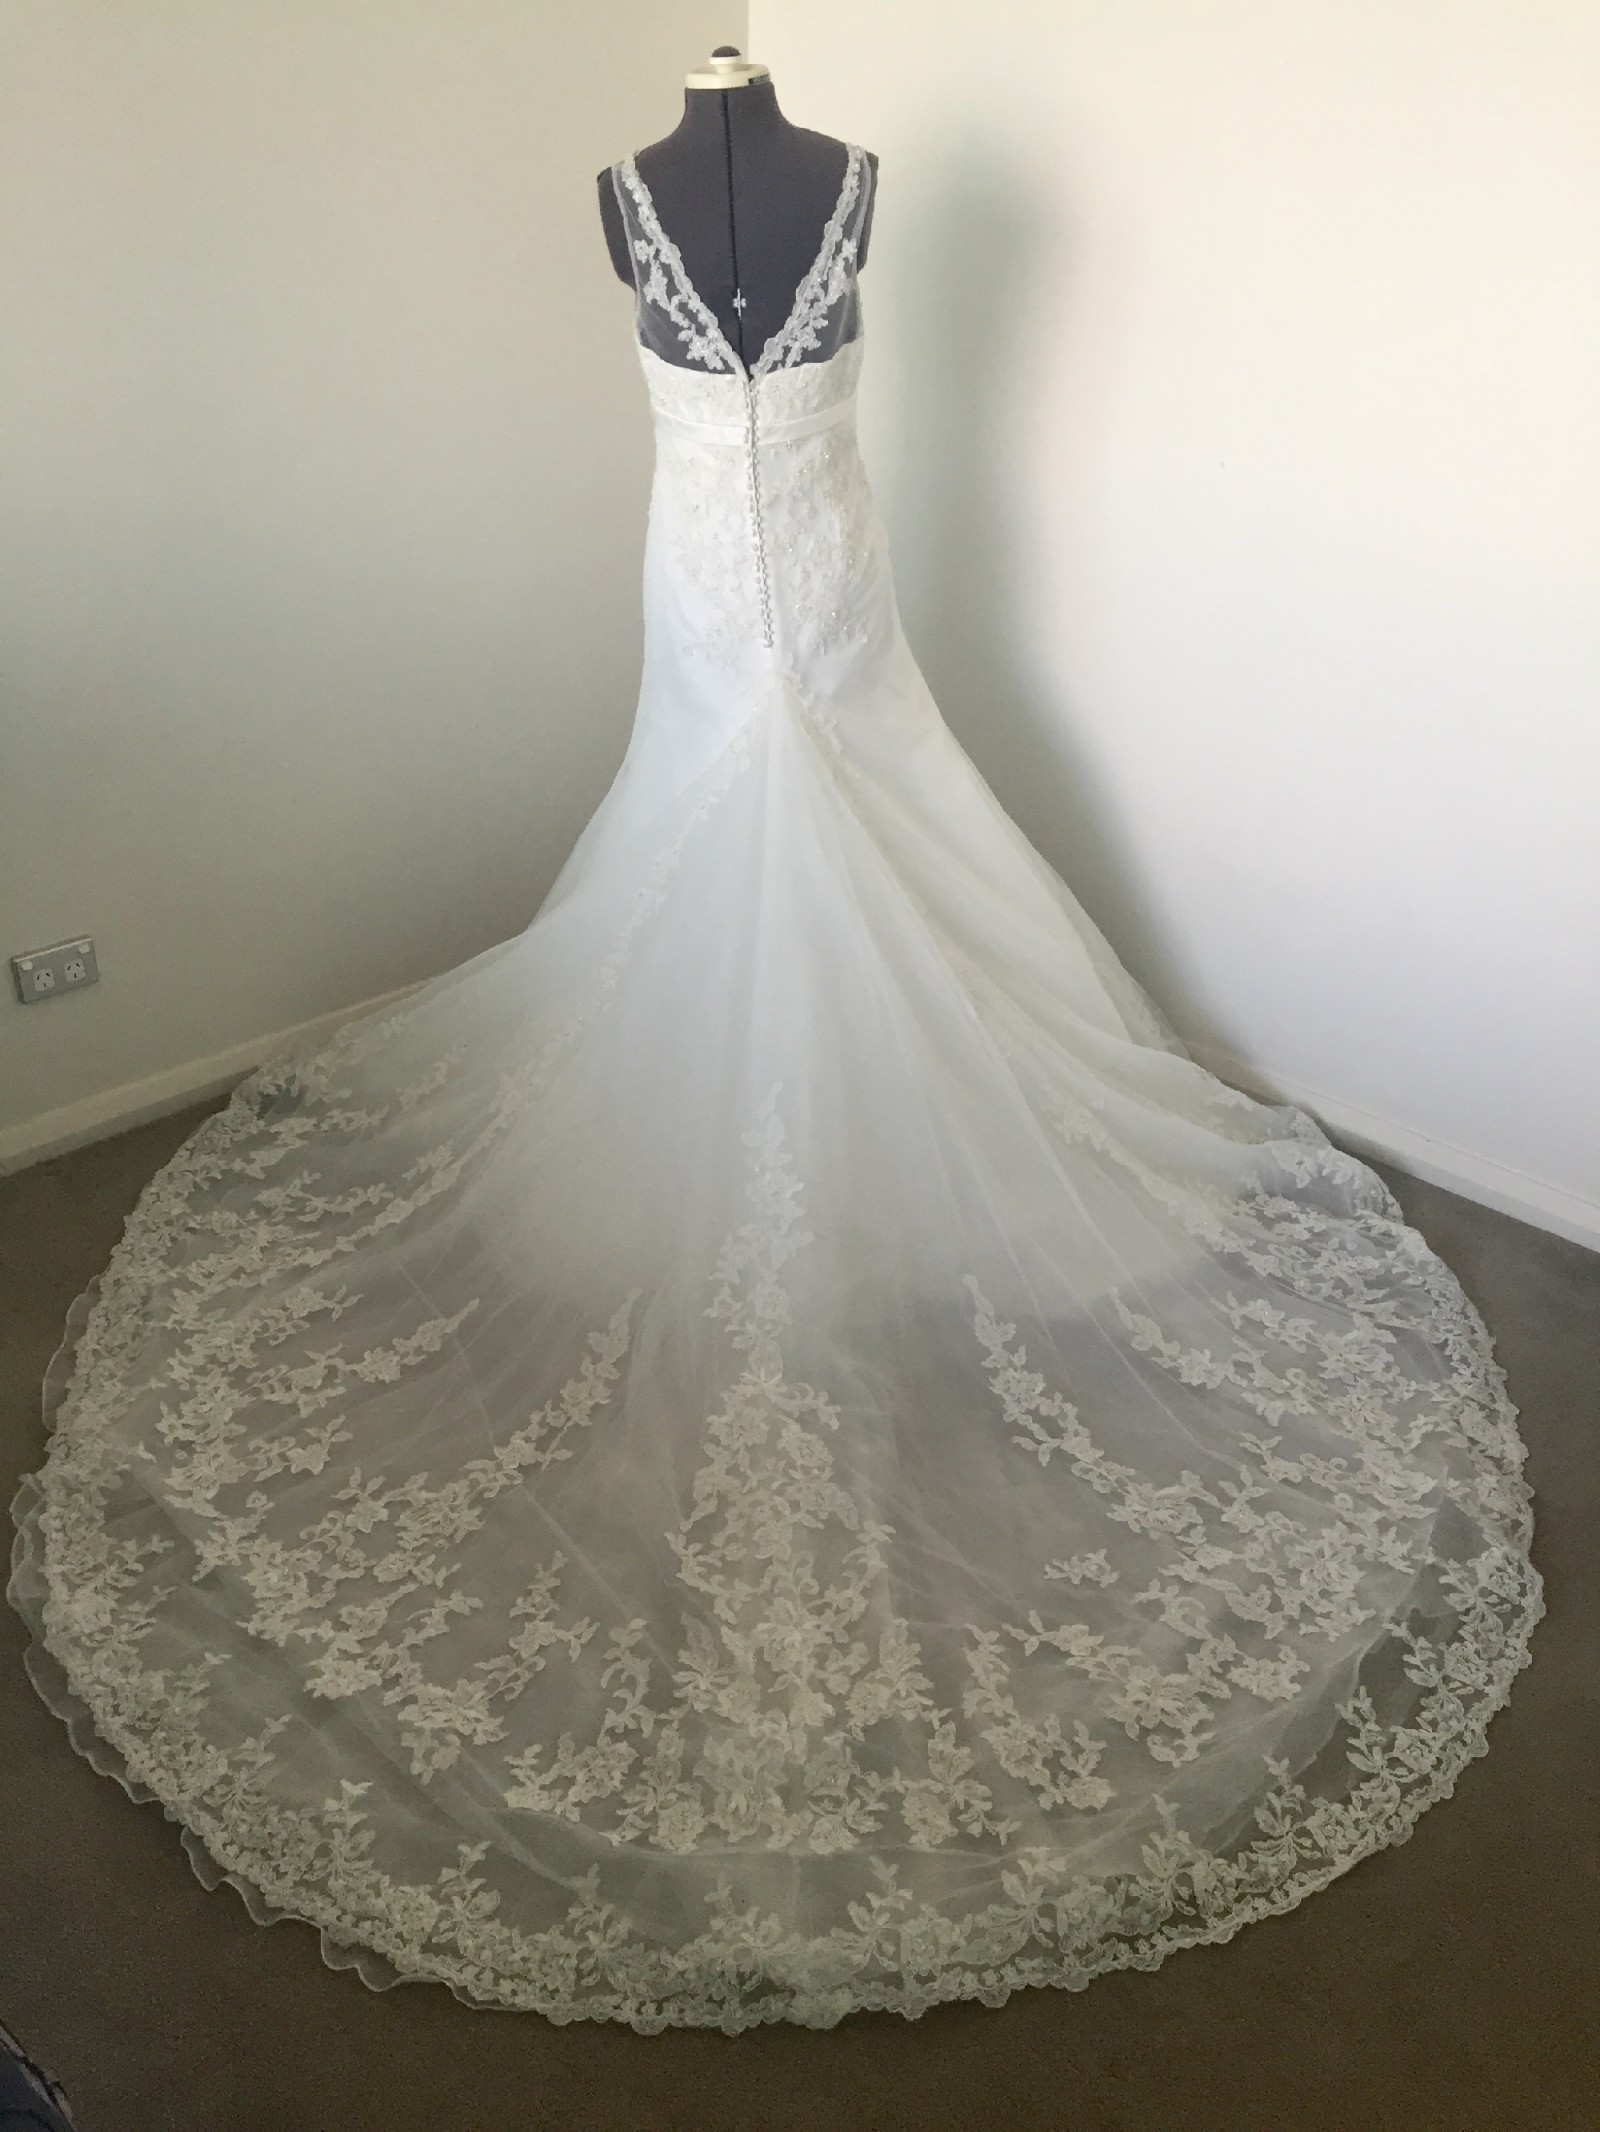 Alfred Angelo Wedding Dresses Reviews : Alfred angelo wedding dress on sale